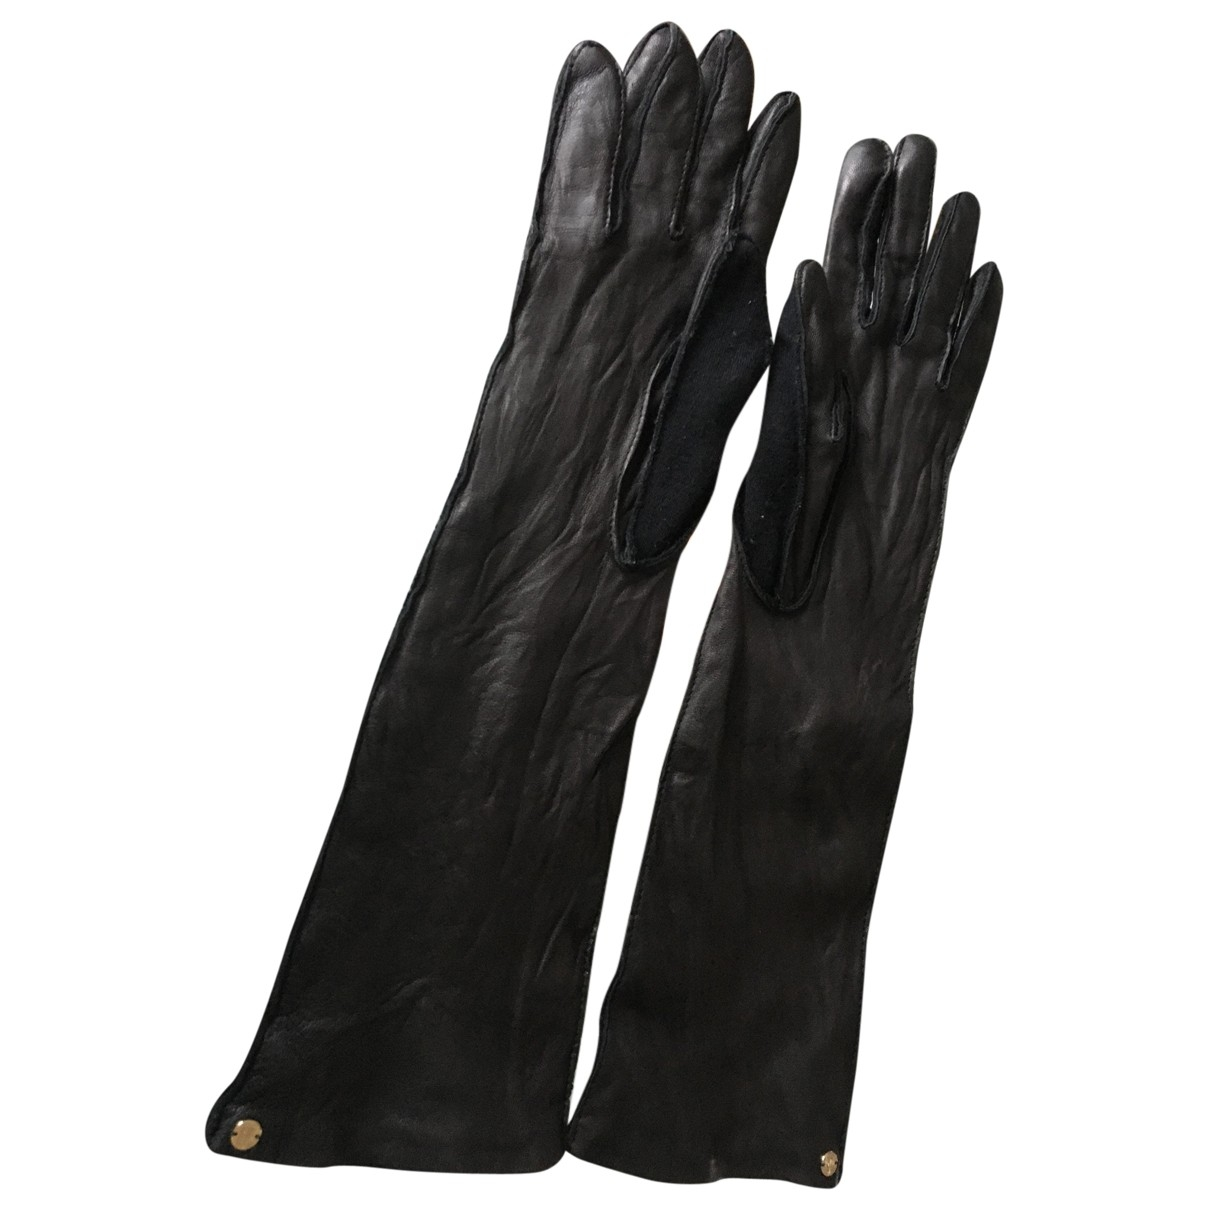 Lanvin \N Black Leather Gloves for Women 7.5 Inches